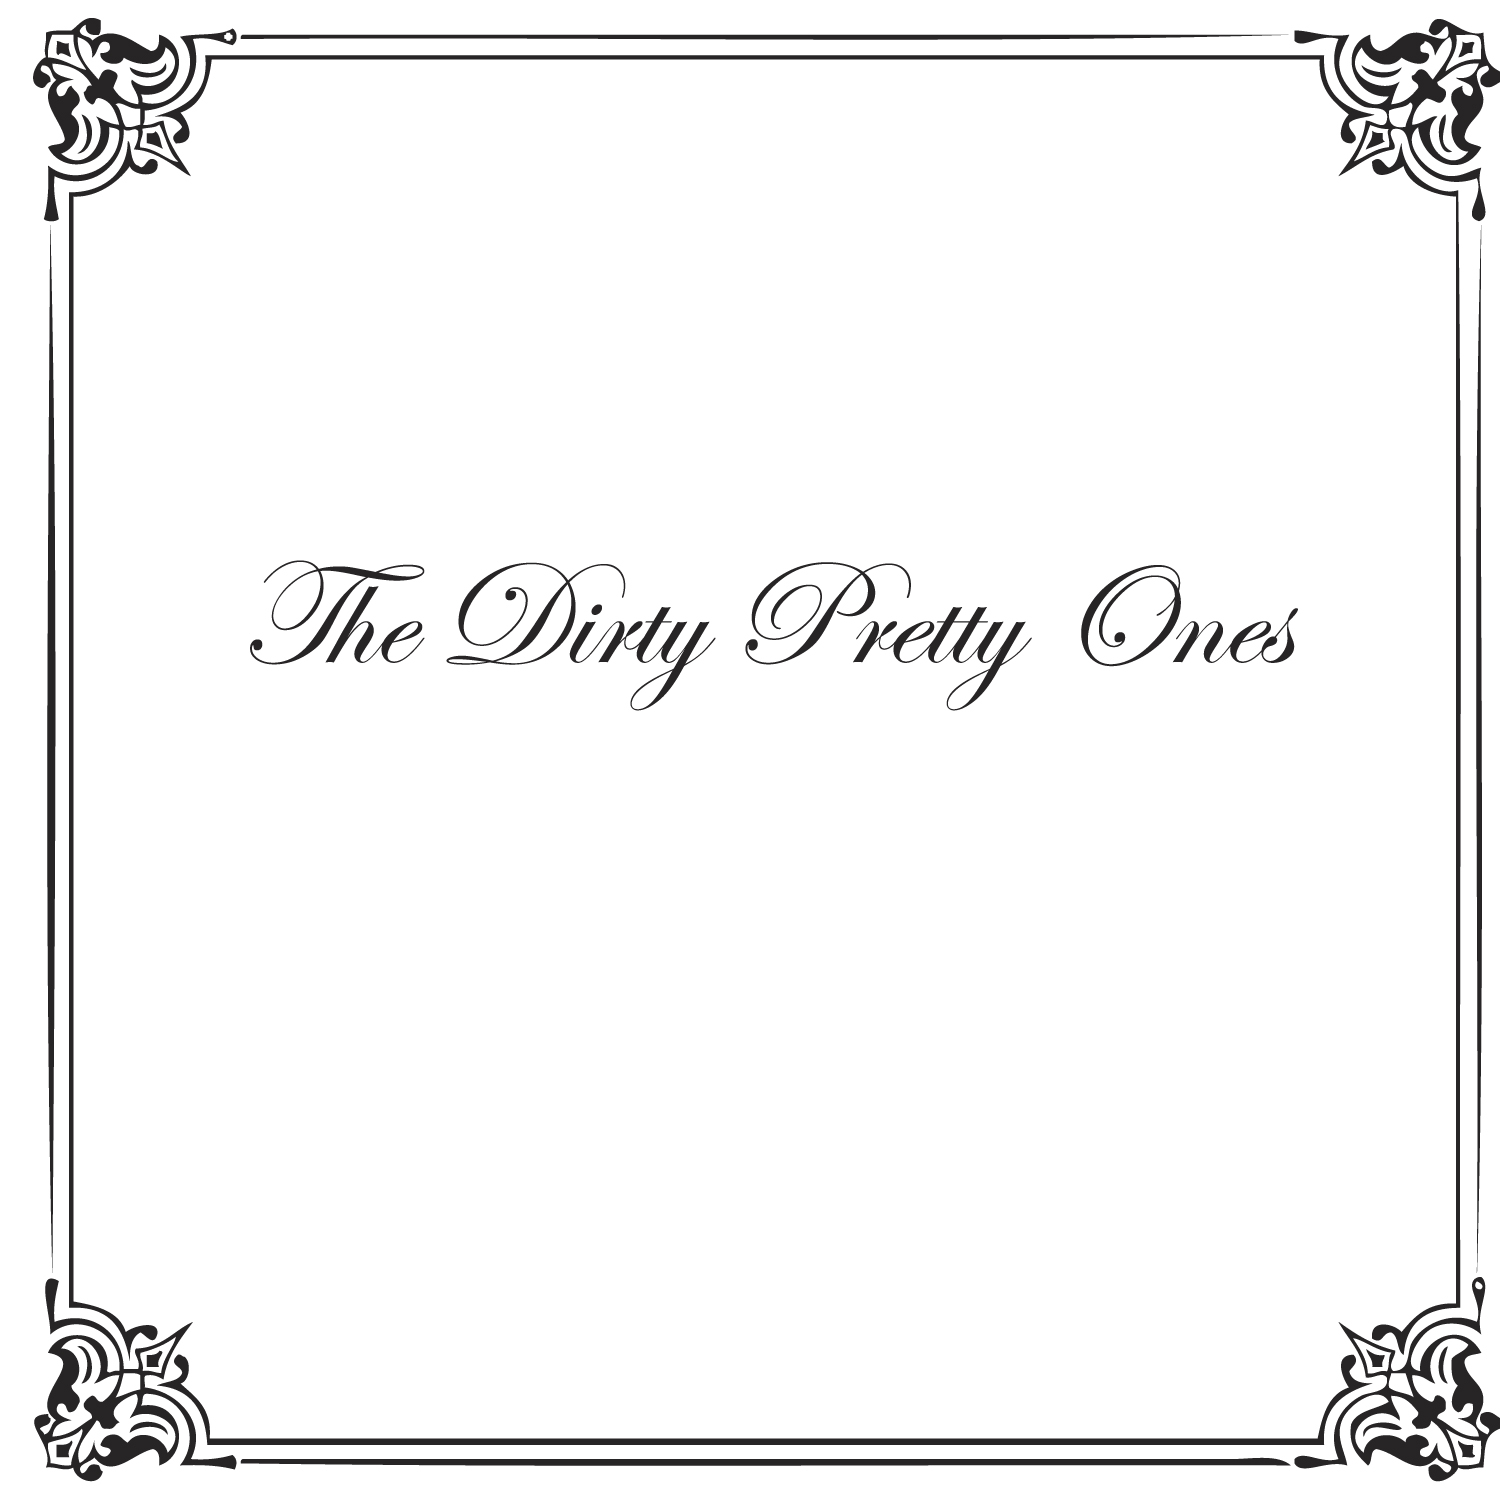 The Dirty Pretty Ones EP